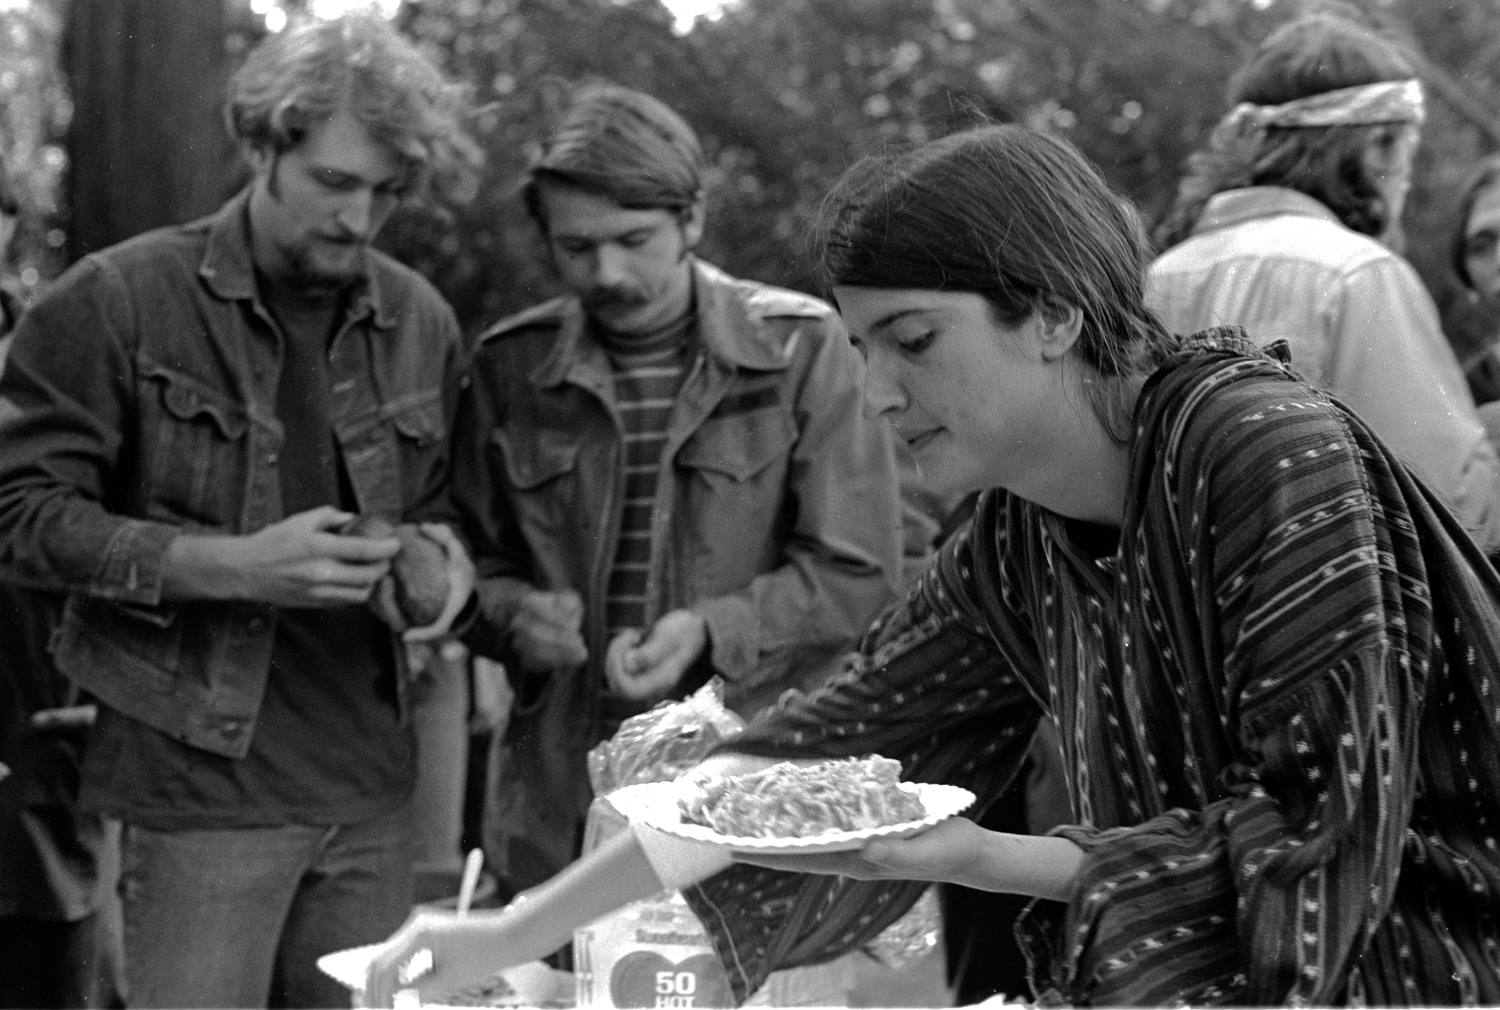 Picnics provided a time and place for sailors to enter the civilian world for awhile, get better acquainted, build trust, and plan. These get-togethers were put together by the civilian supporters of the SOS movement.